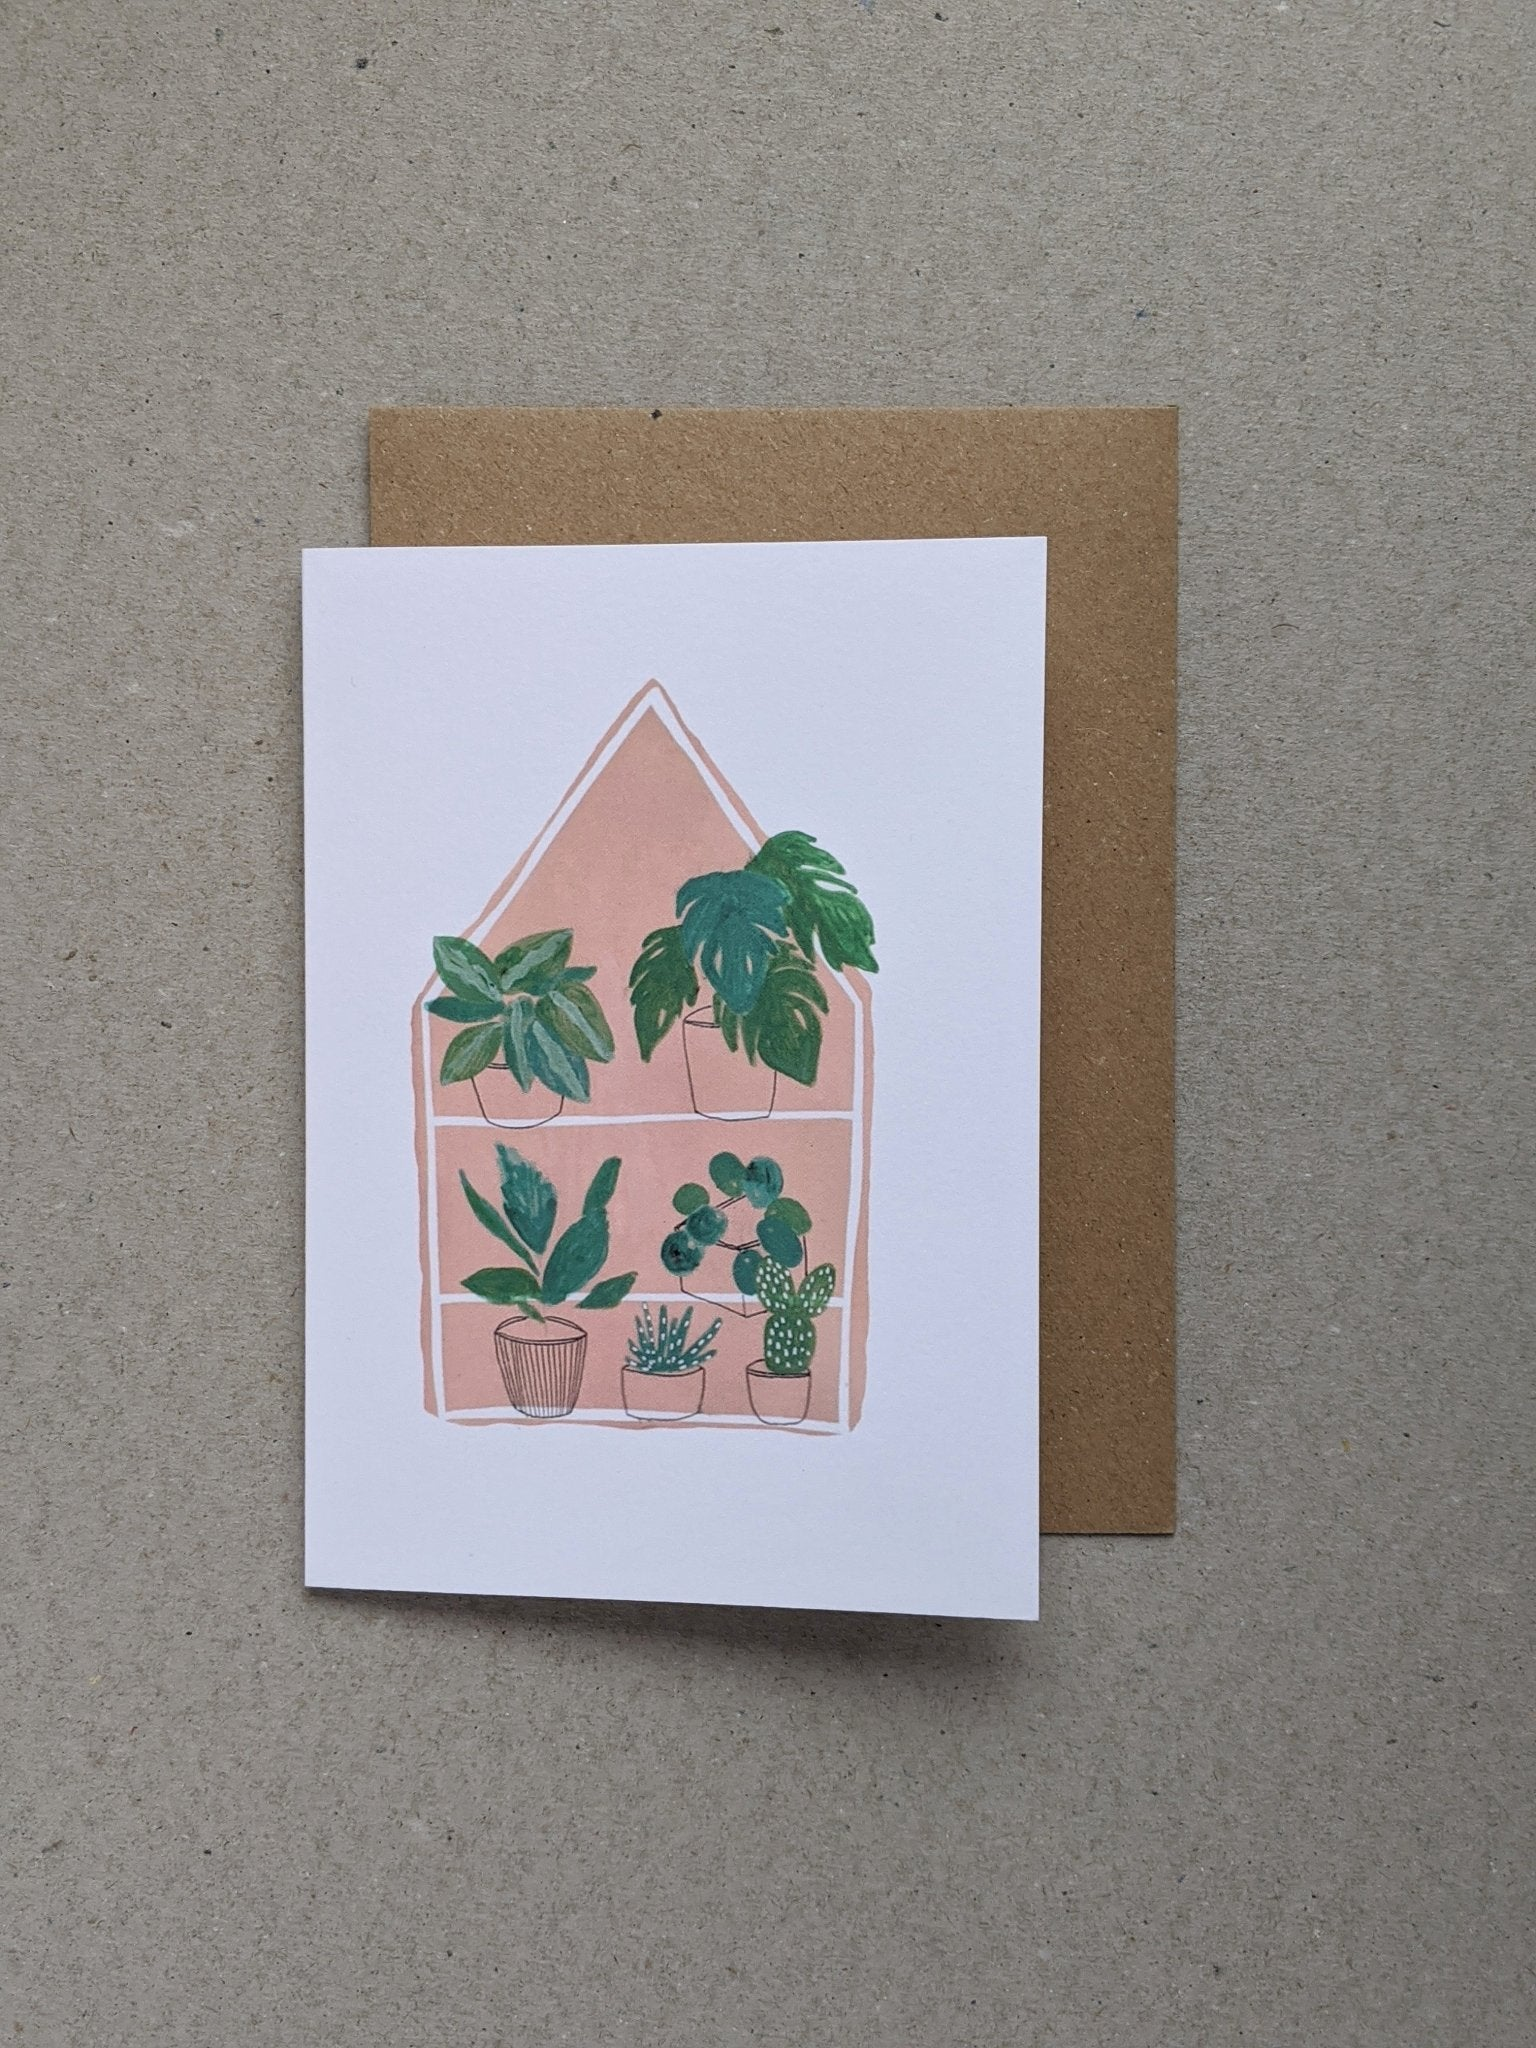 House Plants greetings card - The Stationery Cupboard